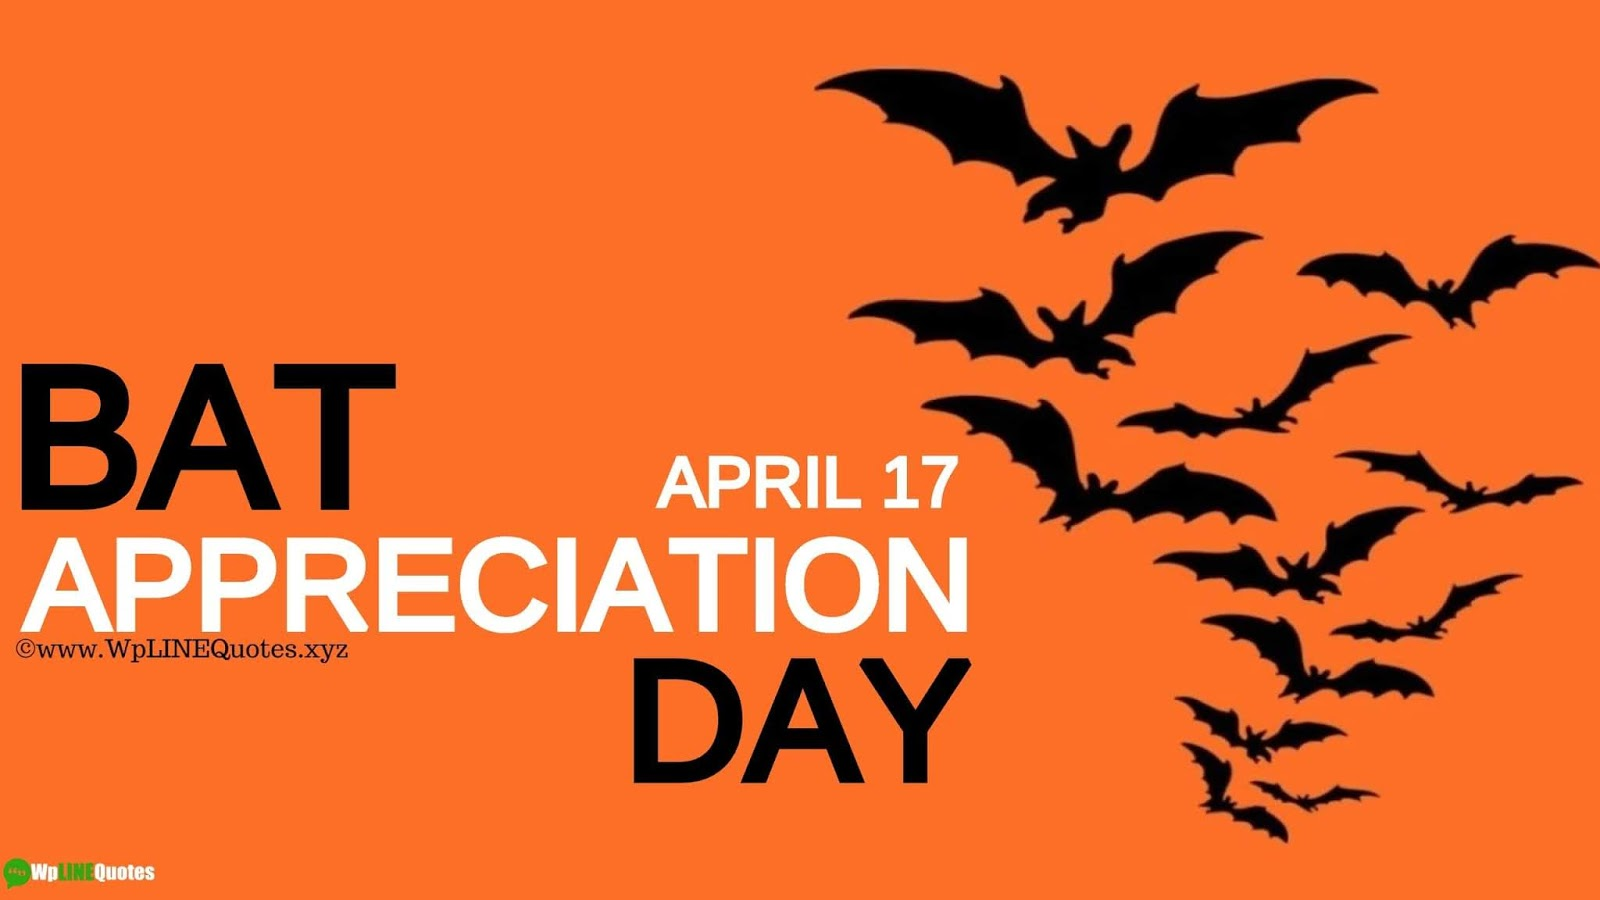 Bat Appreciation Day Quotes, Message, History, Facts, Images